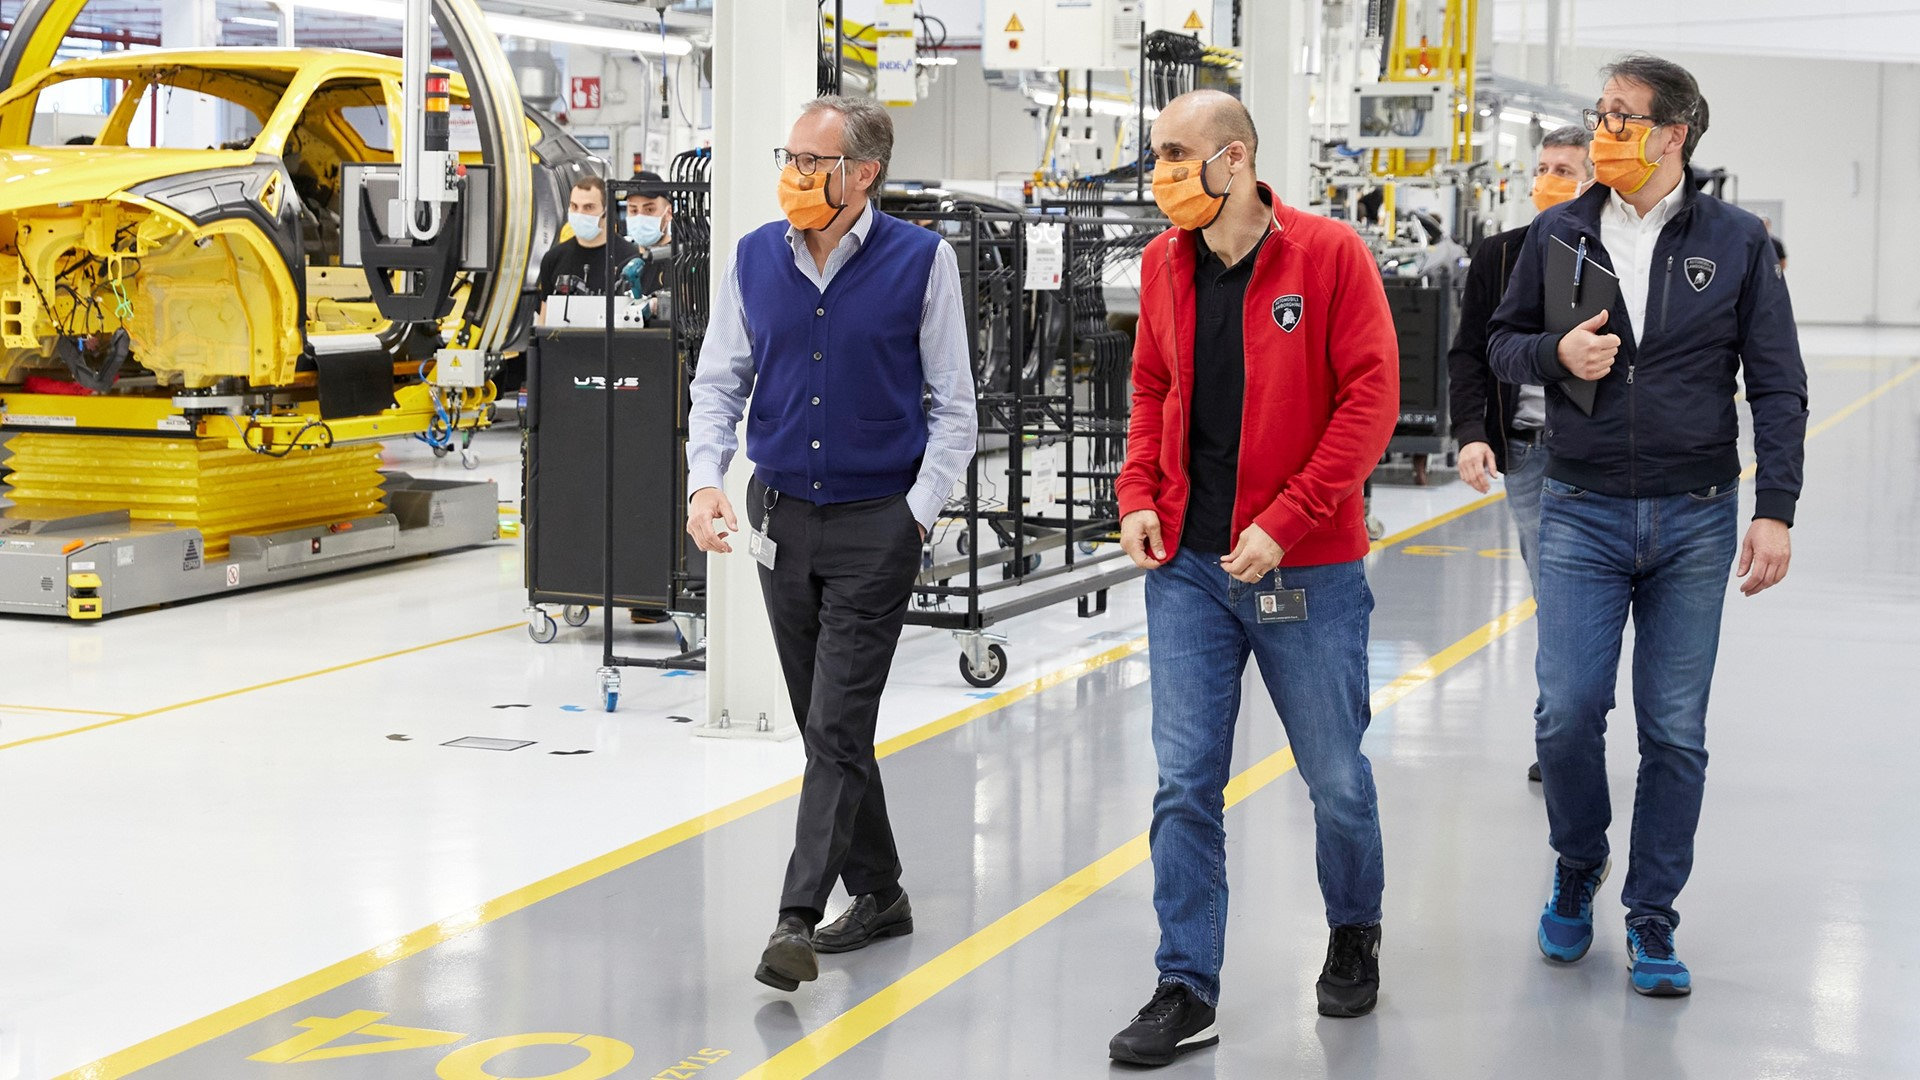 Automobili Lamborghini prepares to restart production on May 4 with people-safety foremost - Image 8